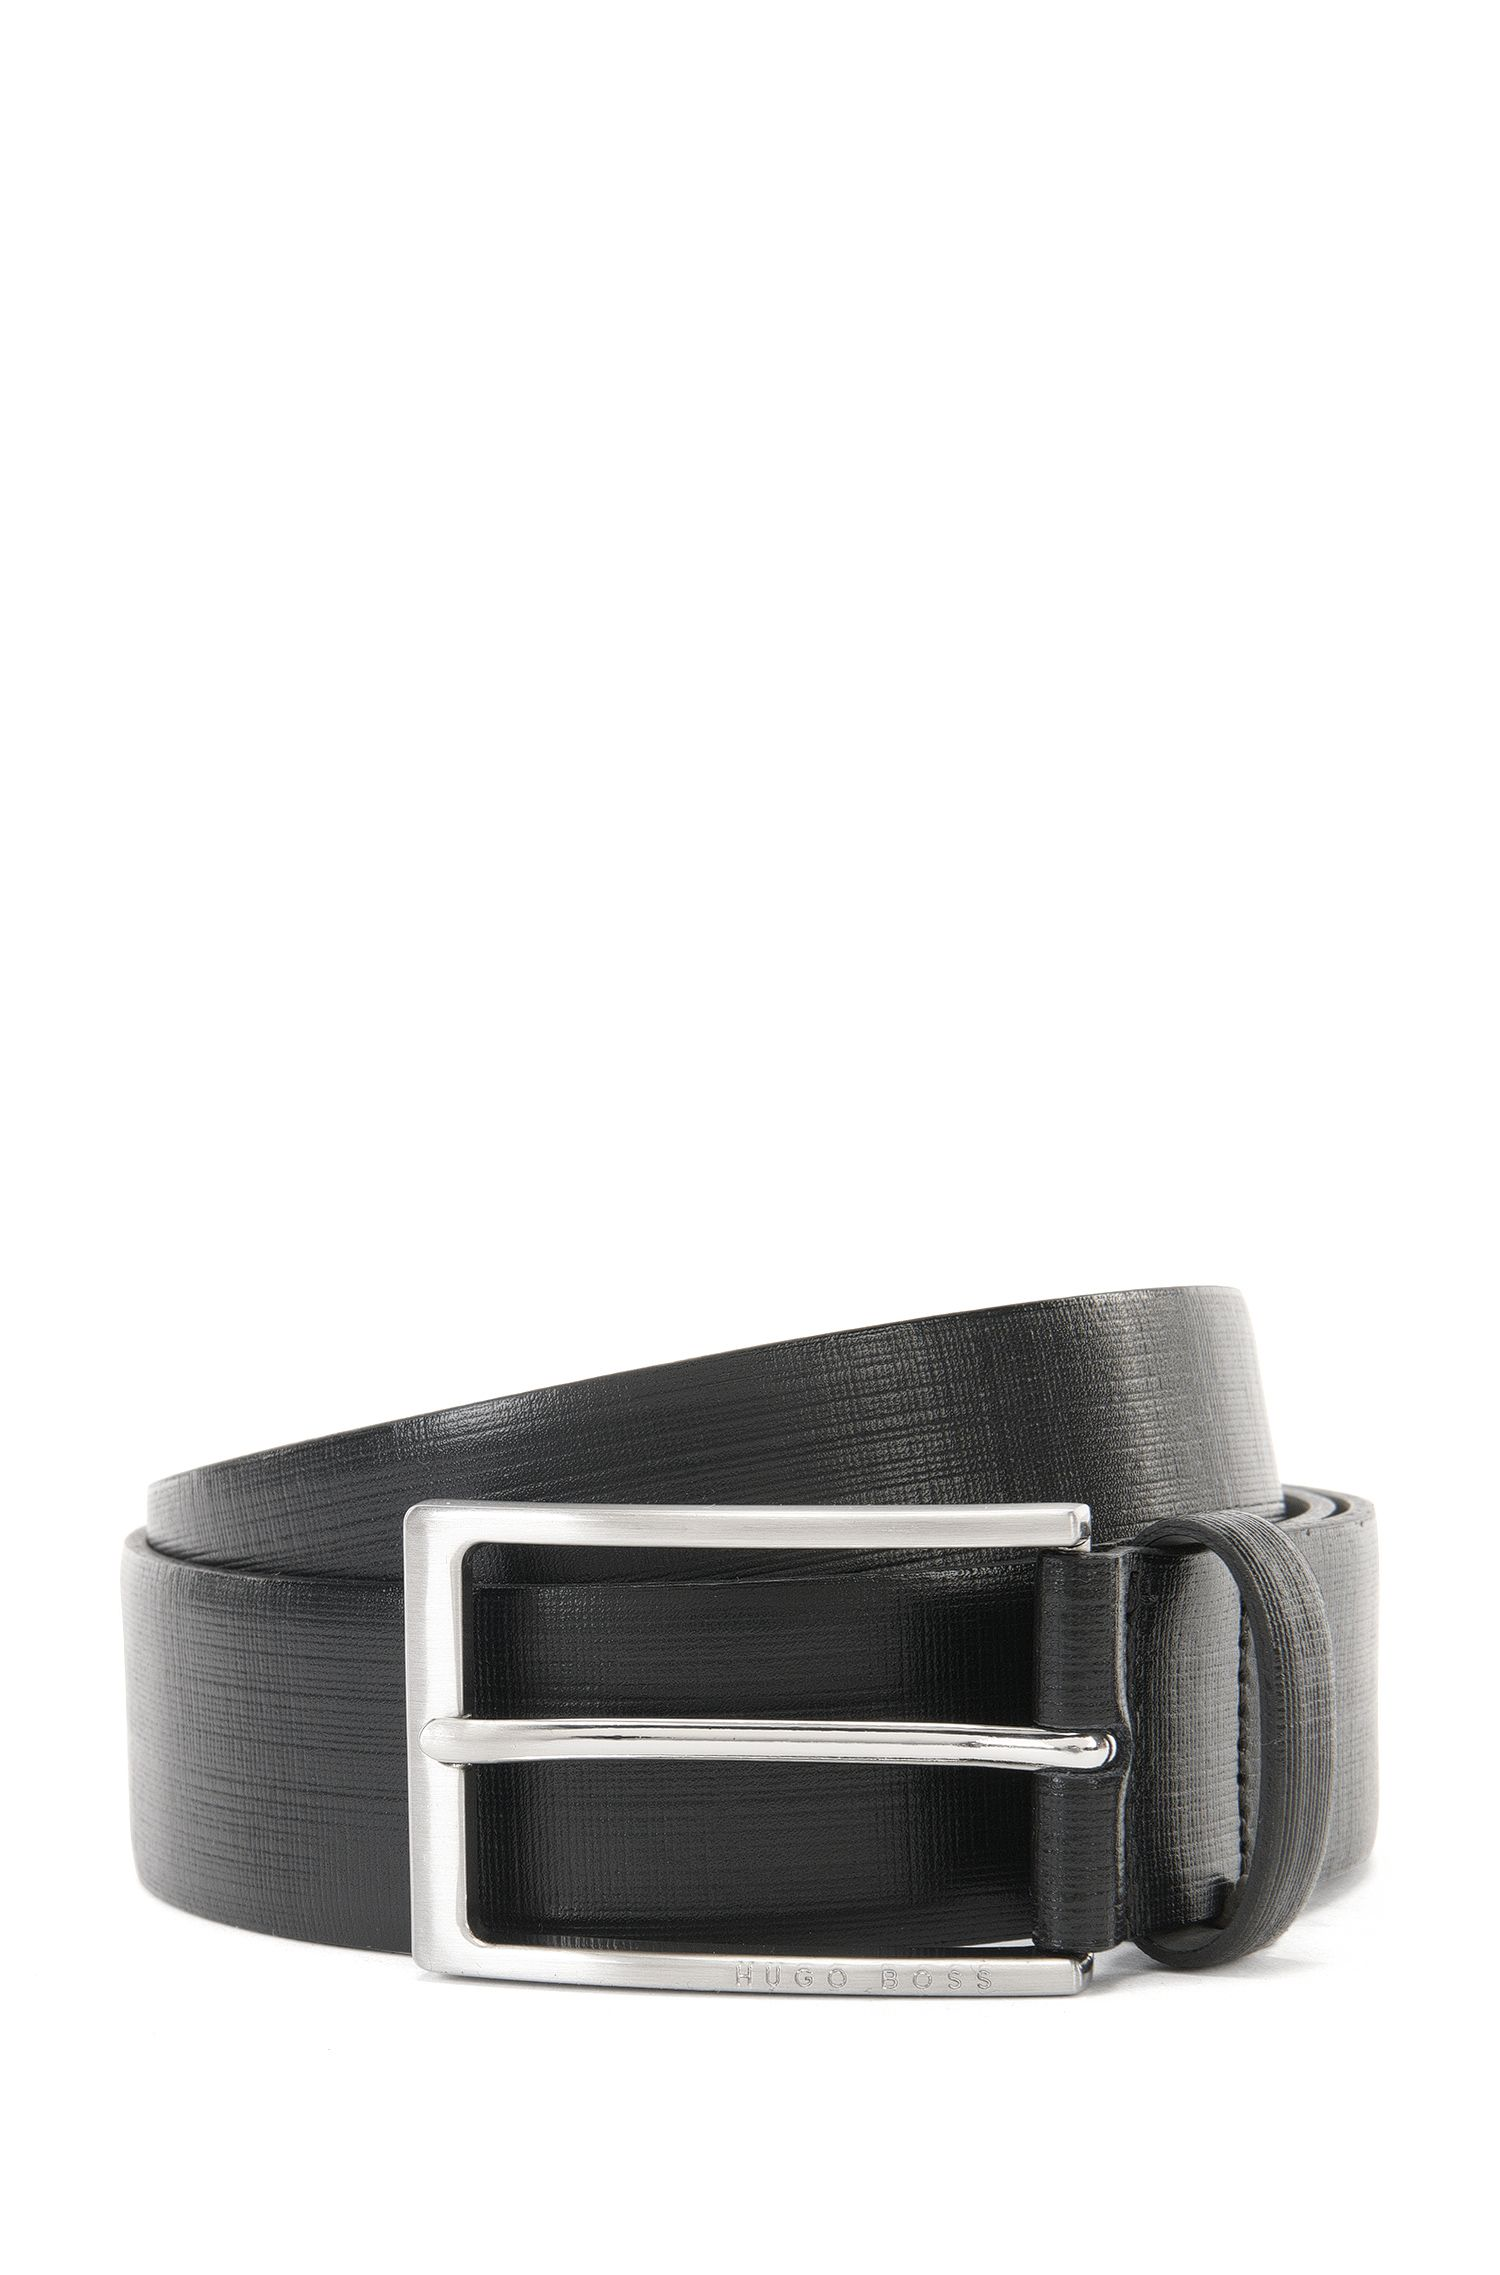 Leather belt with printed detail